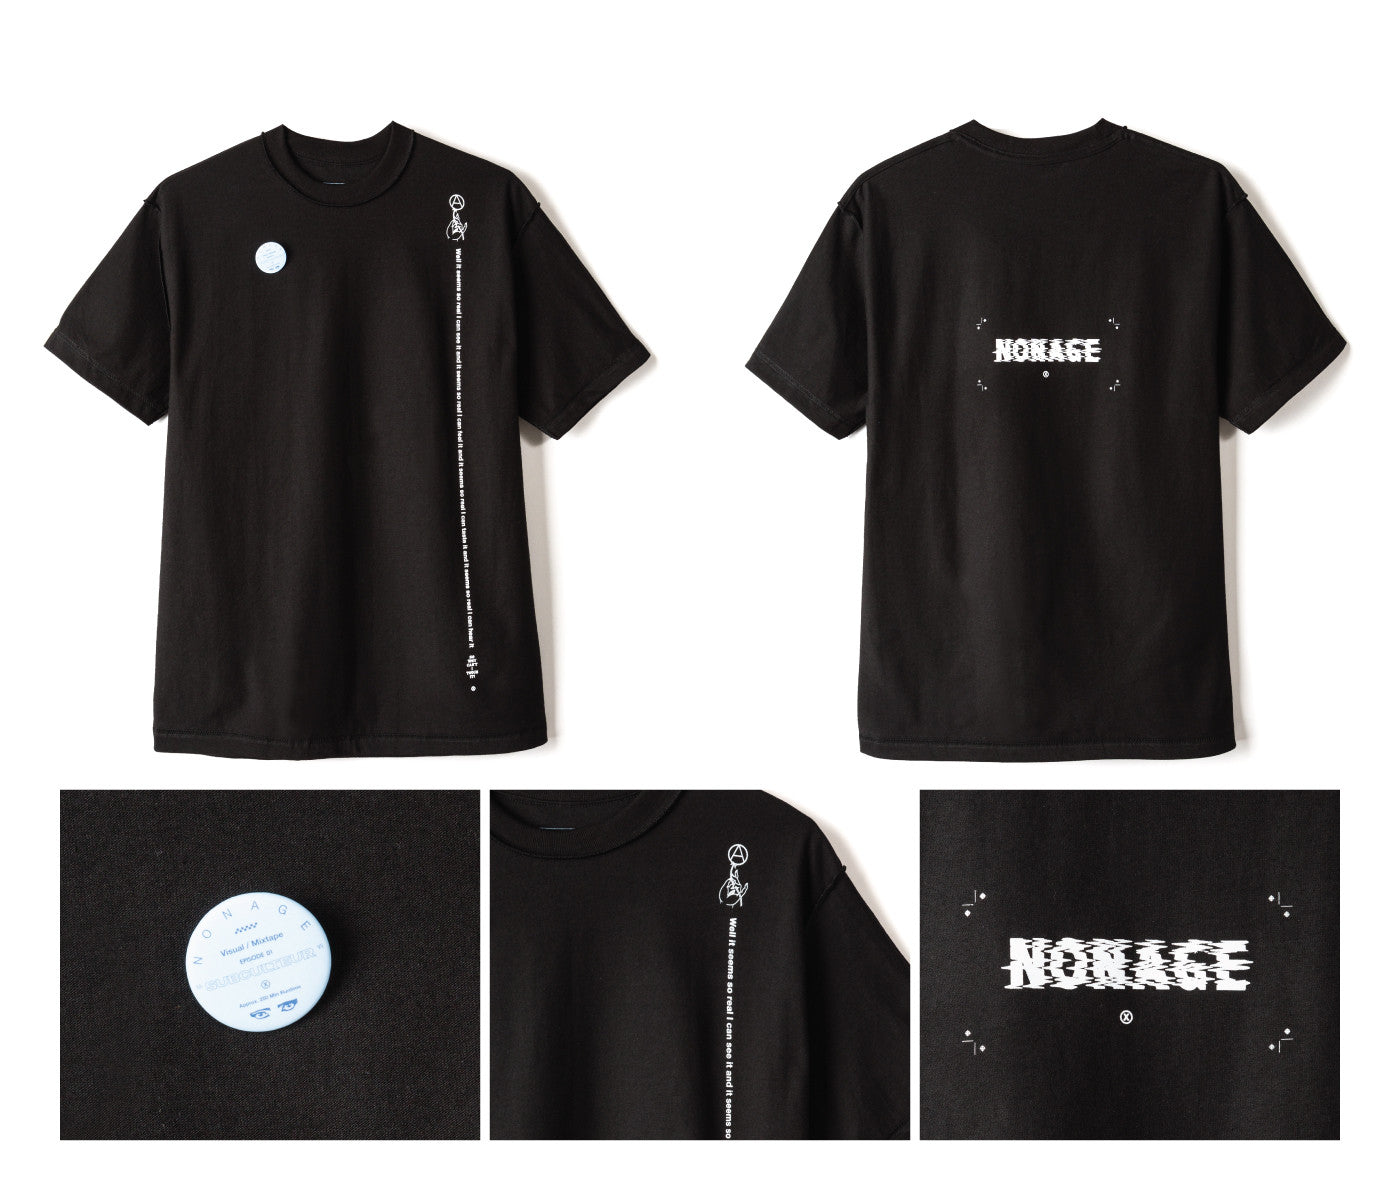 NONAGE Episode 1 'BUZZ' Tee